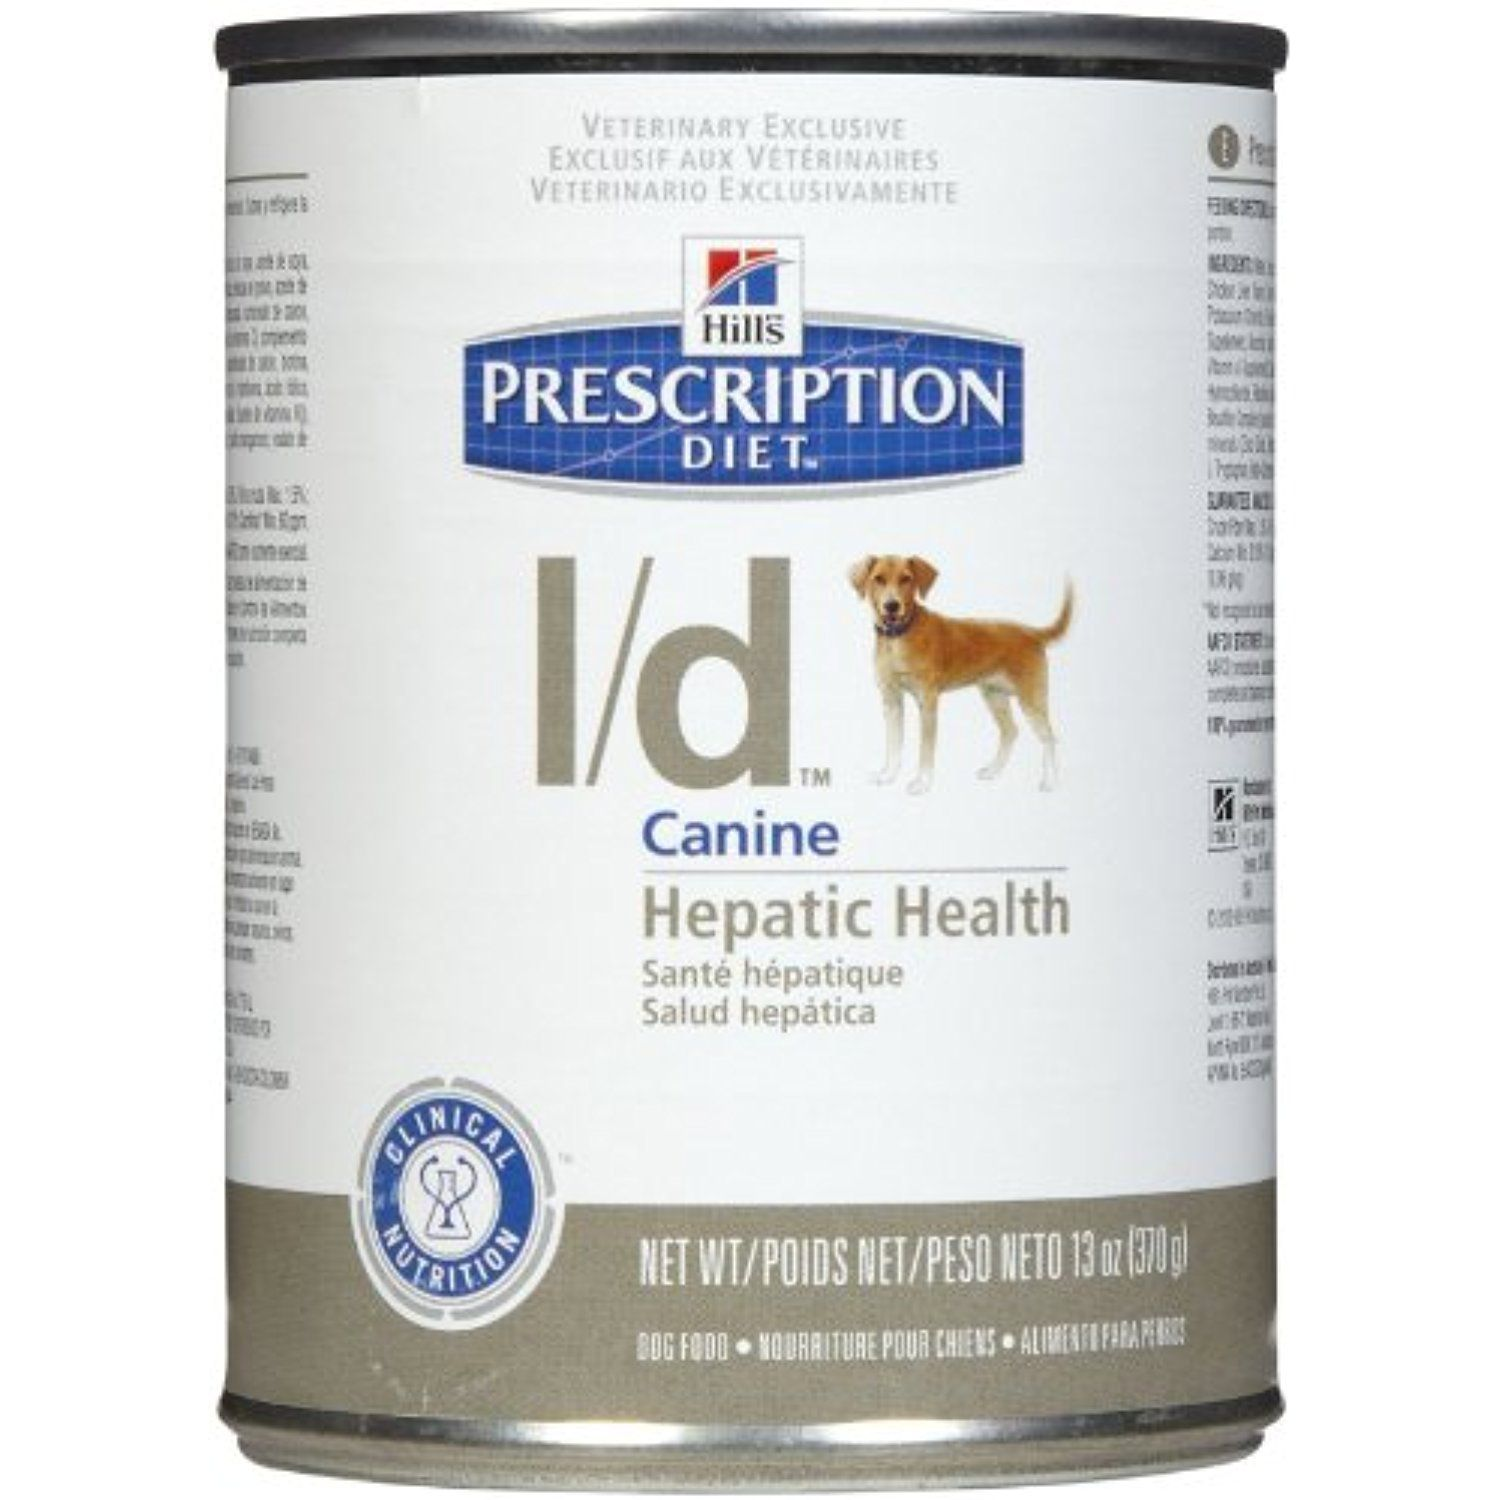 Hill S Prescription Diet L D Hepatic Health Dog Food 12 13 Oz Cans You Can Click Image For More D Canned Dog Food Dog Food Recipes Healthy Dog Food Recipes